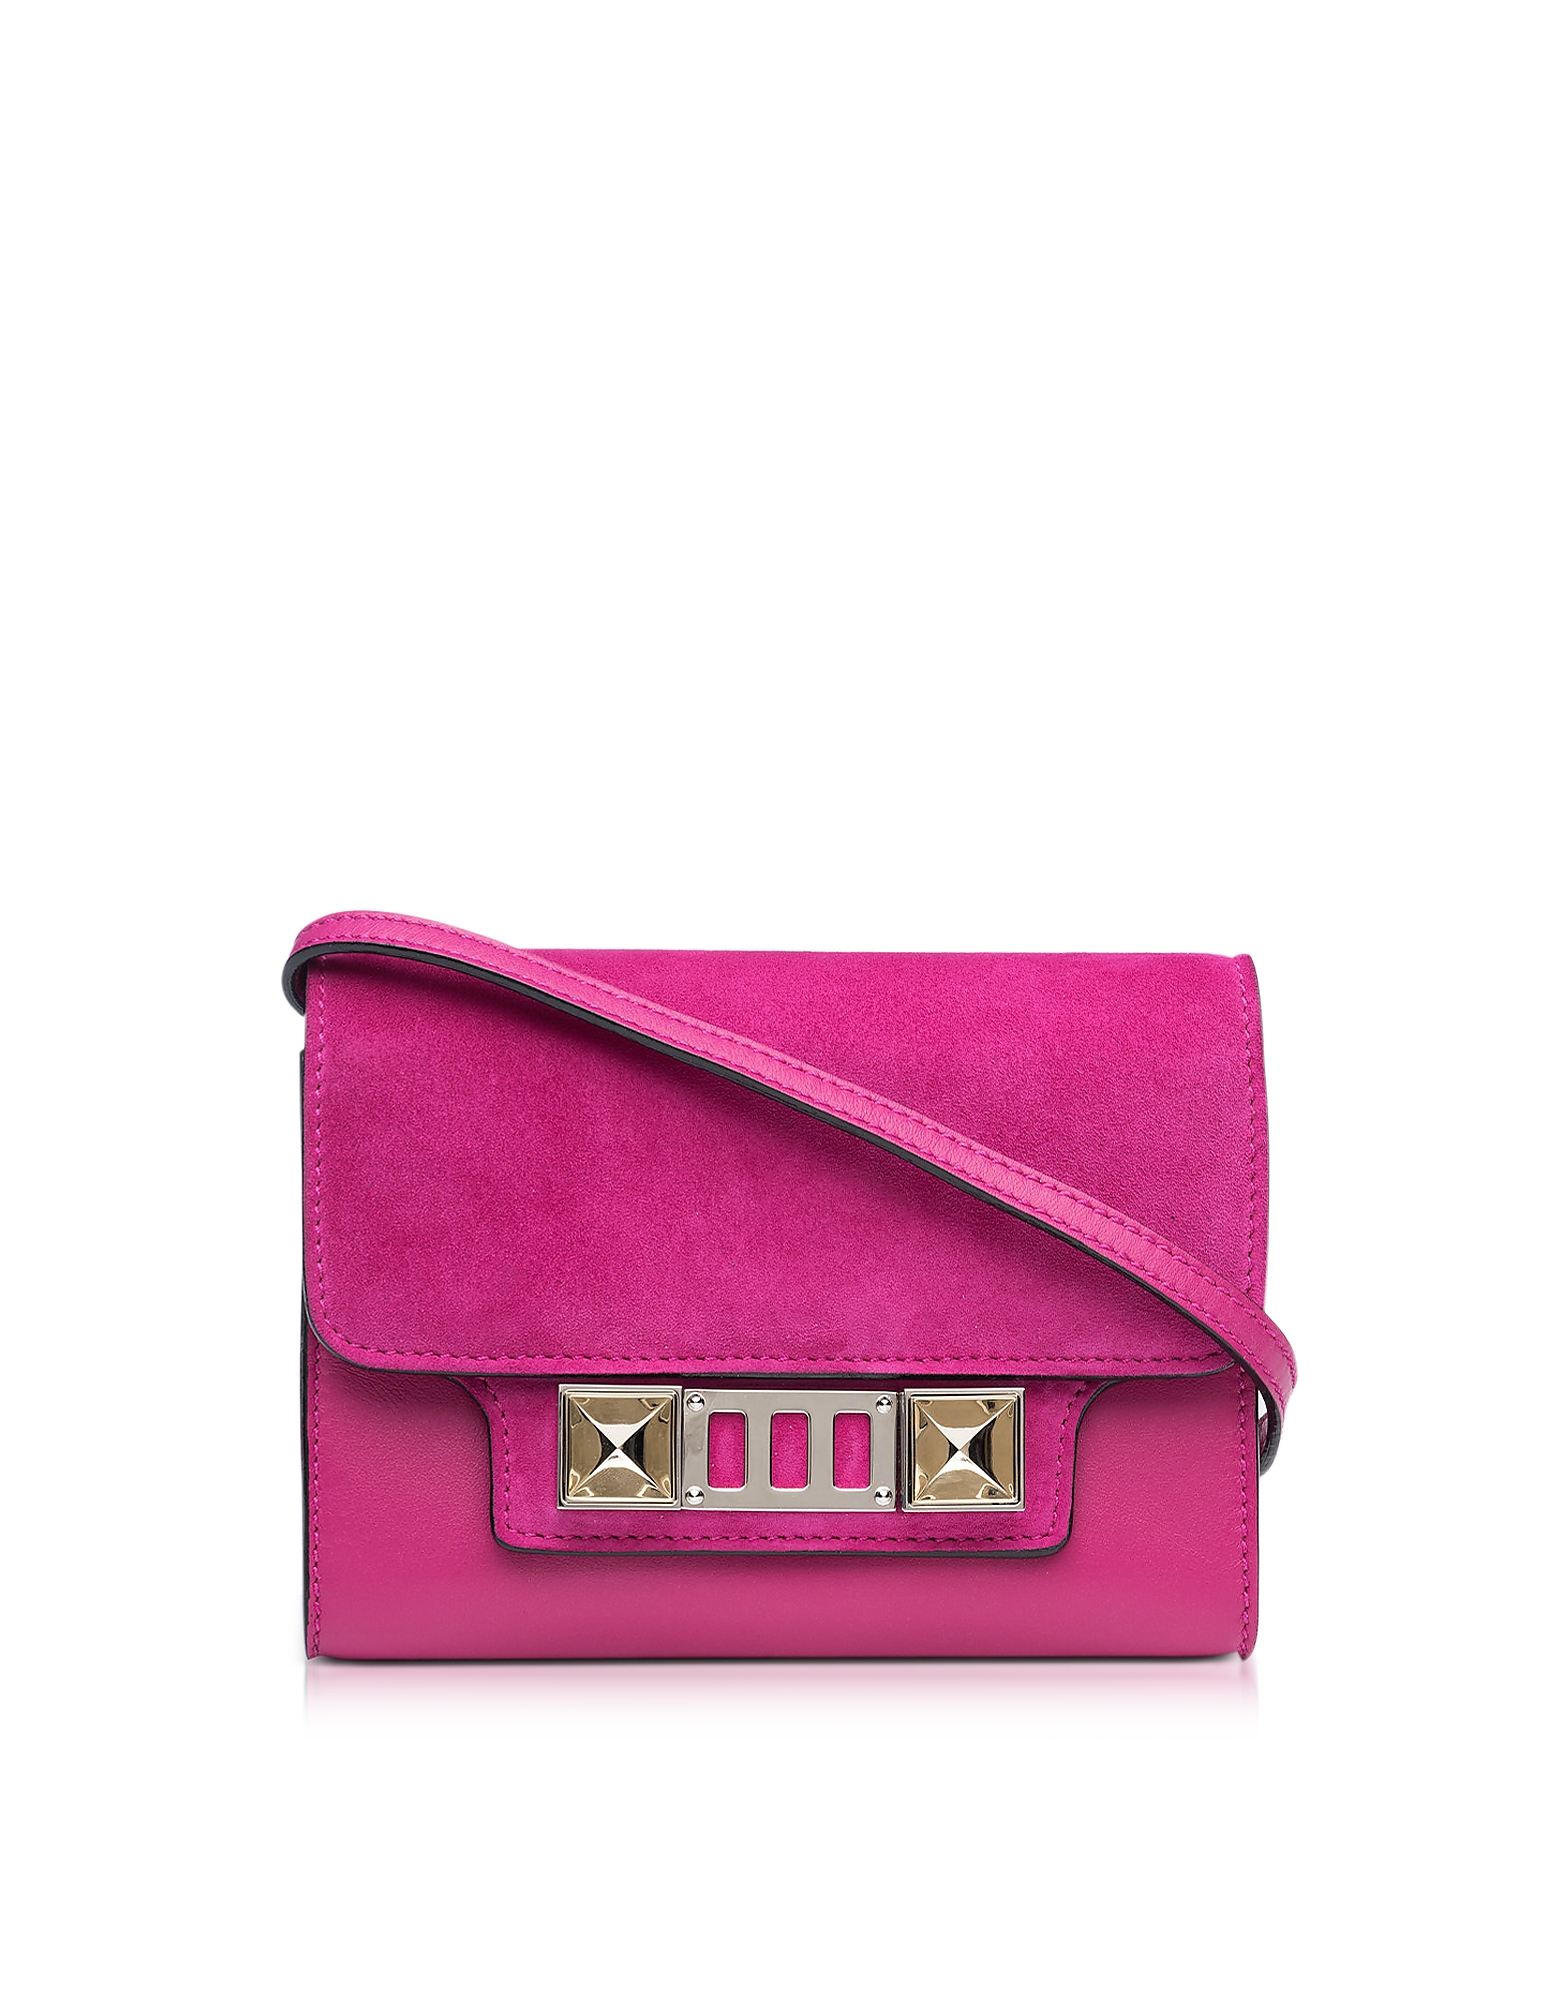 Proenza Schouler Handbags, PS11 Peony Leather and Suede Wallet w/Shoulder Strap